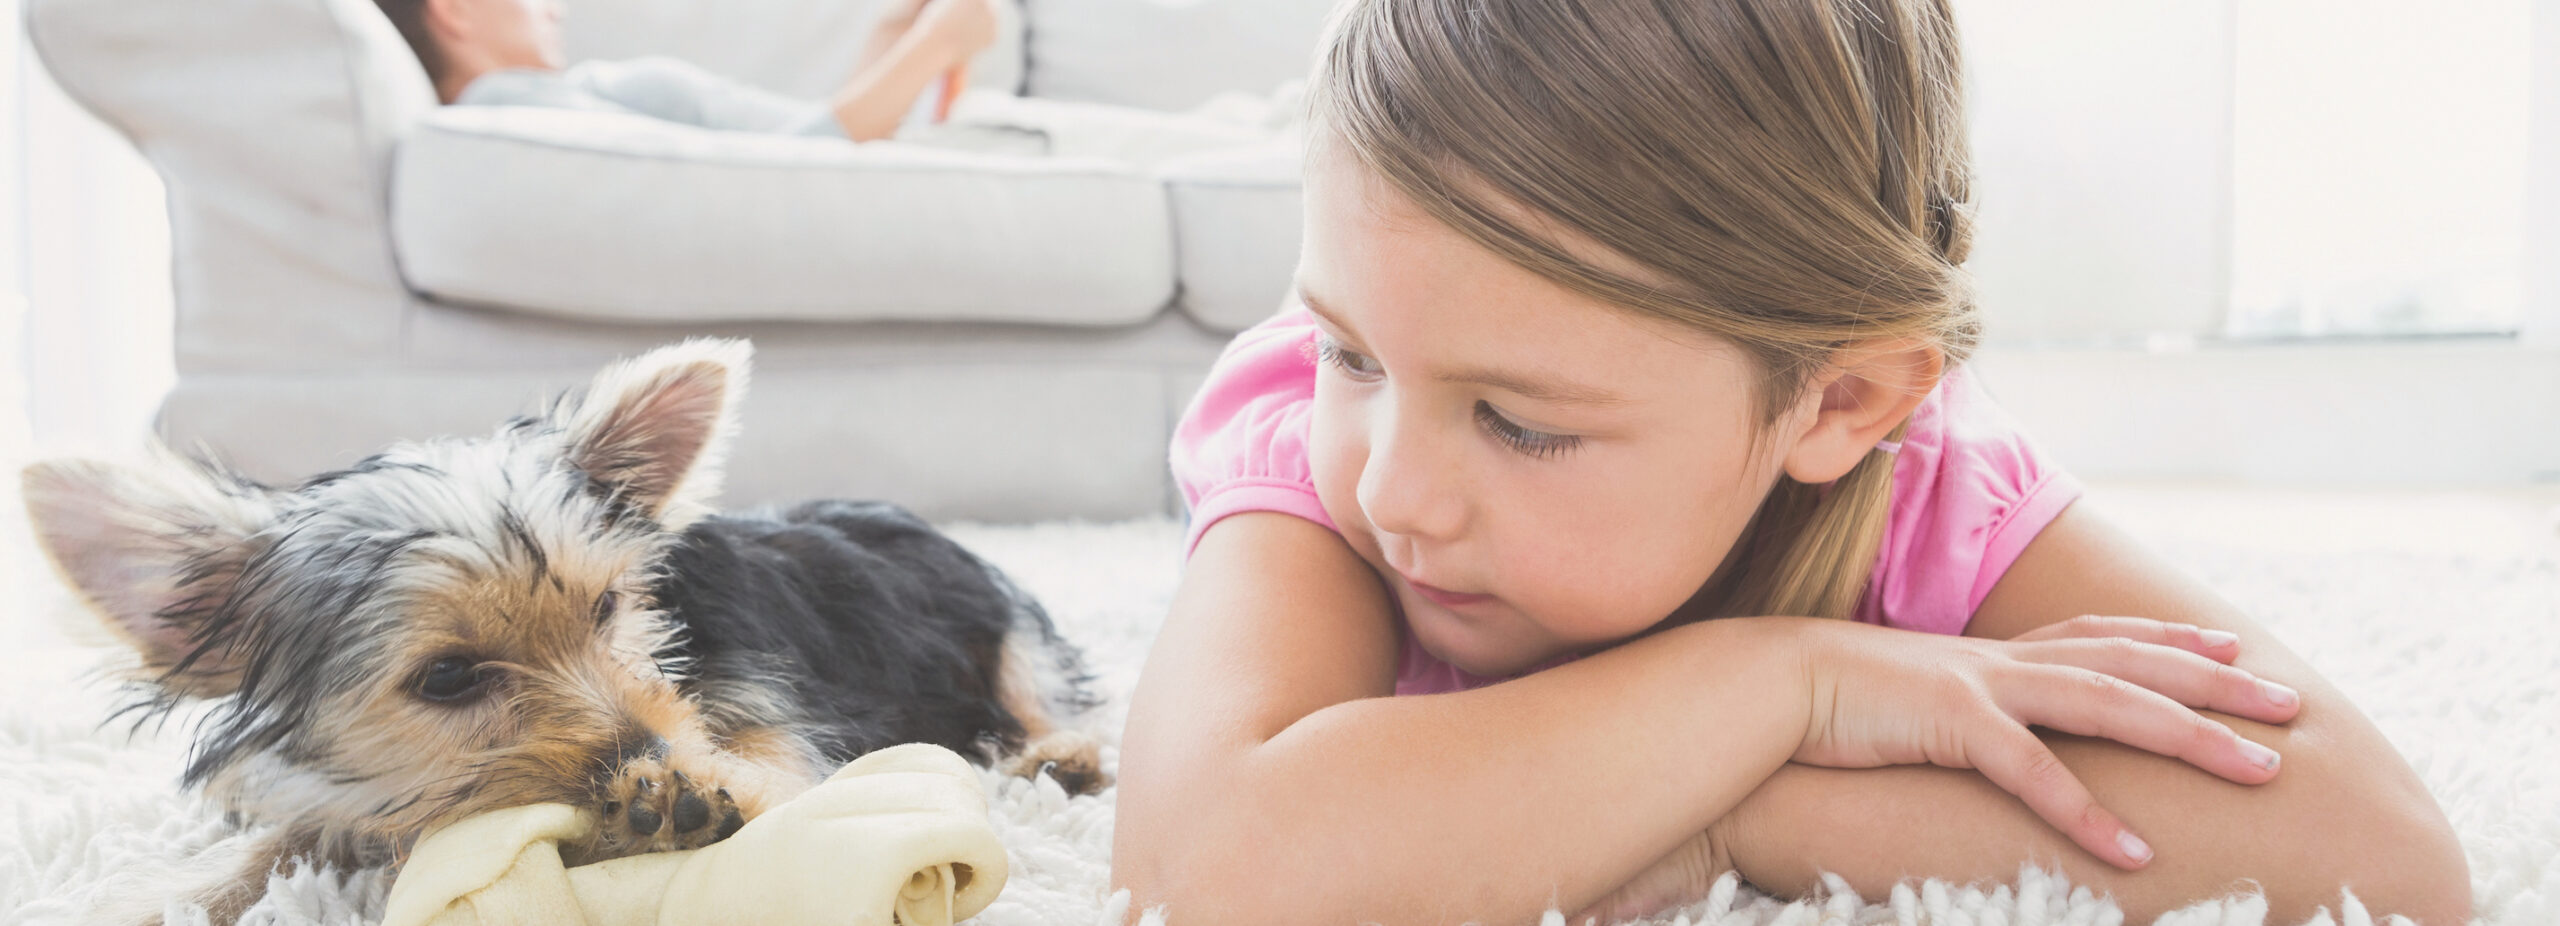 girl kid hanging out with puppy